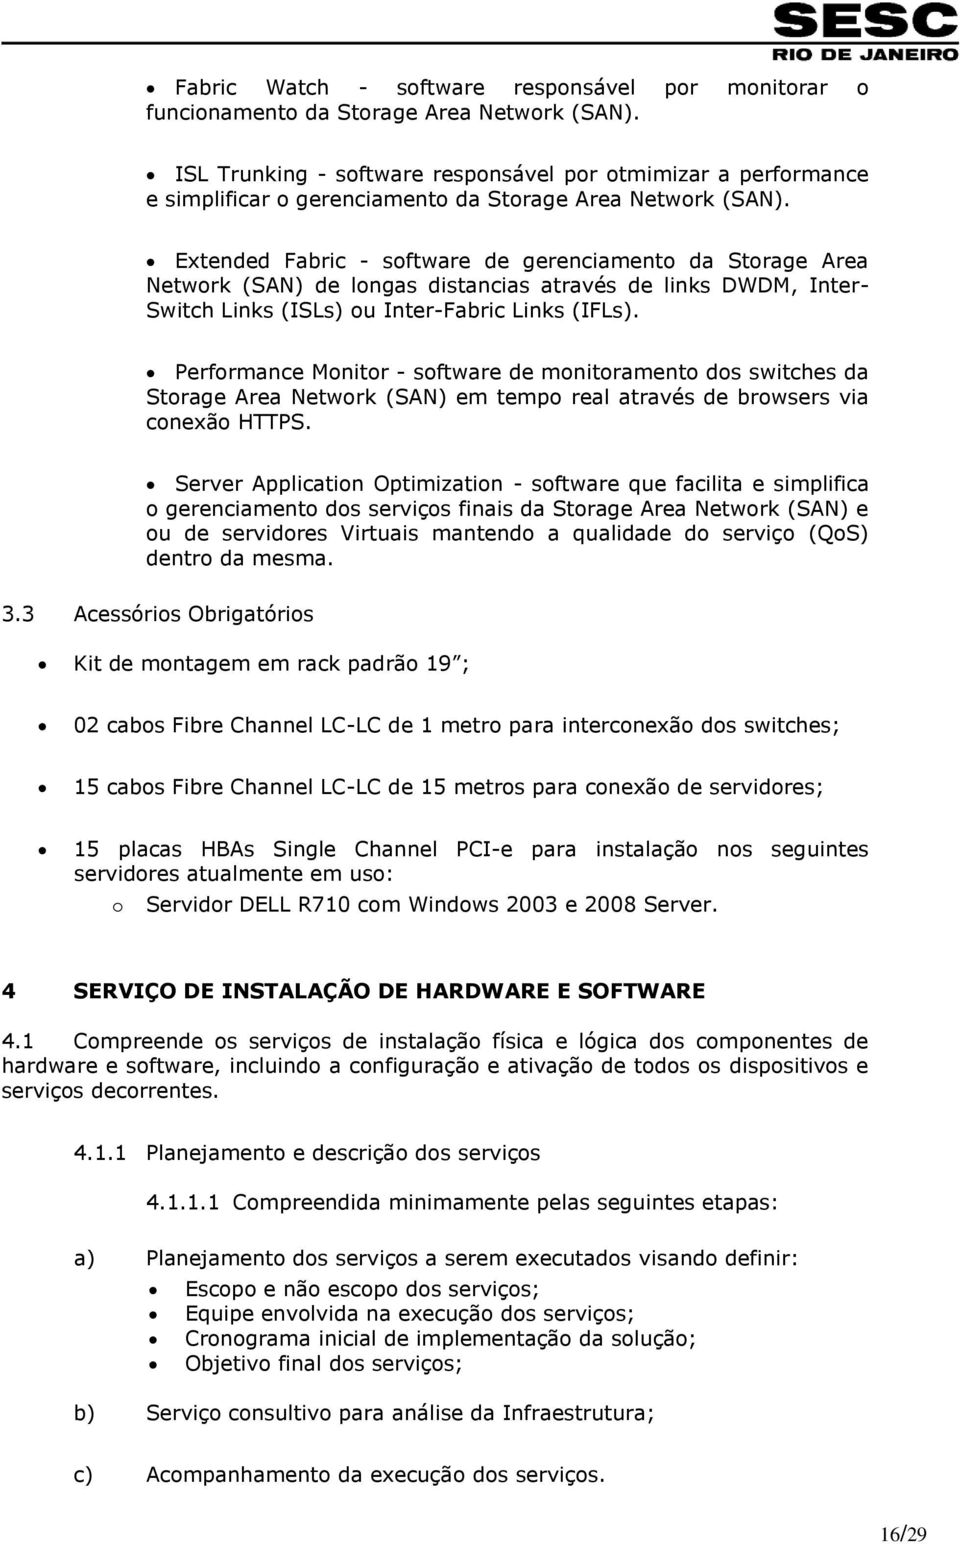 Extended Fabric - software de gerenciamento da Storage Area Network (SAN) de longas distancias através de links DWDM, Inter- Switch Links (ISLs) ou Inter-Fabric Links (IFLs).